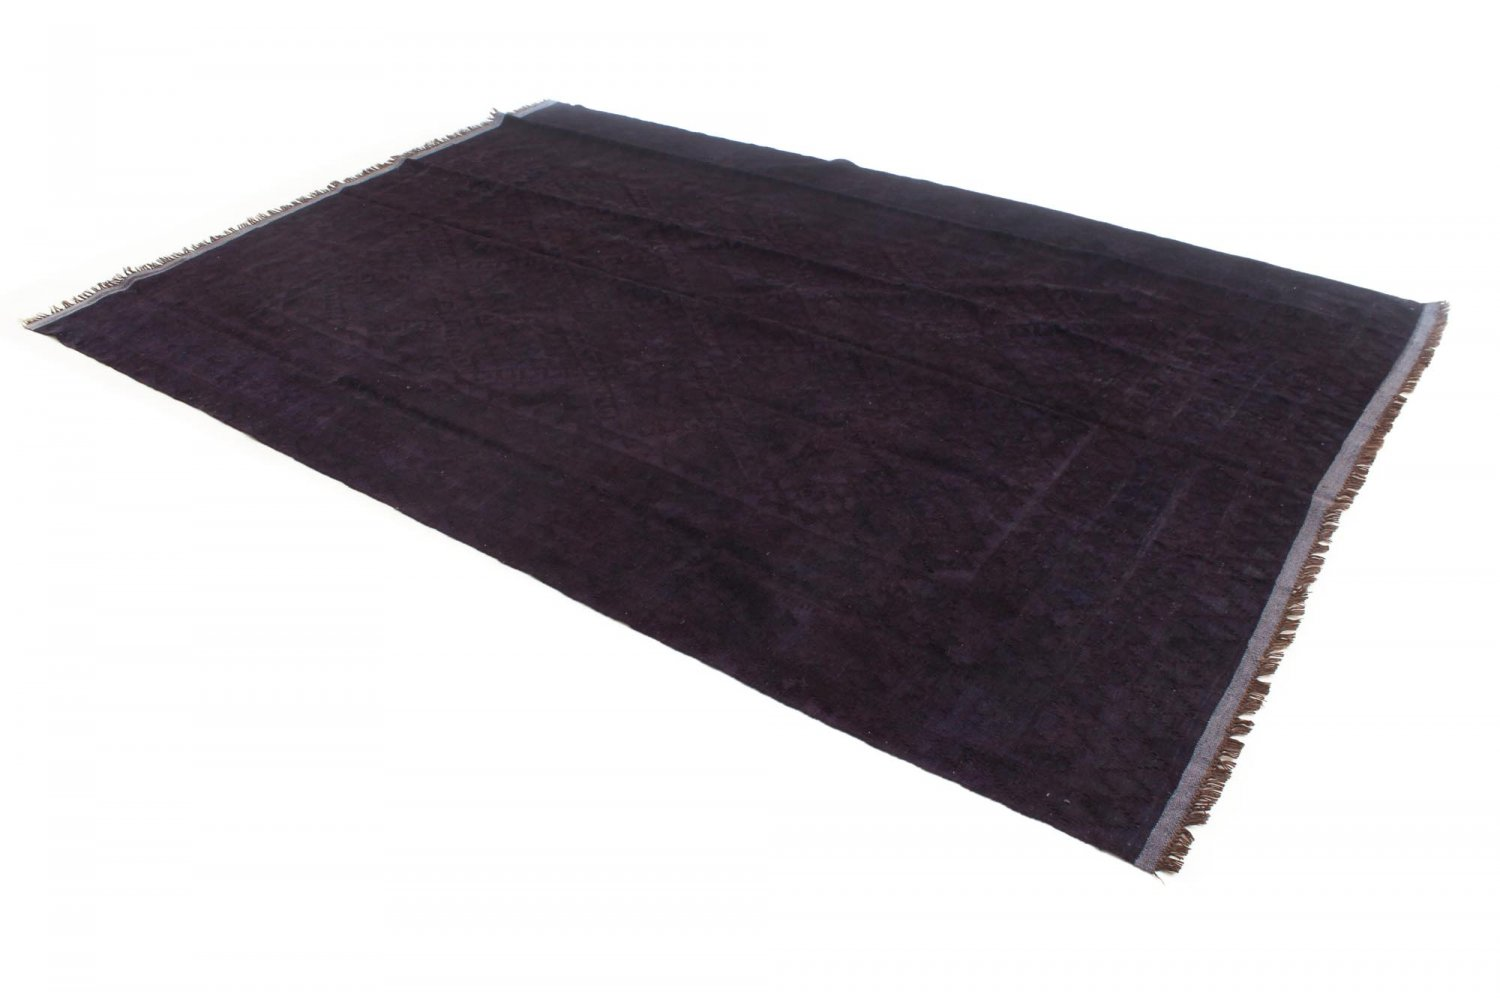 tapis kilim afghan 300 x 205 cm. Black Bedroom Furniture Sets. Home Design Ideas